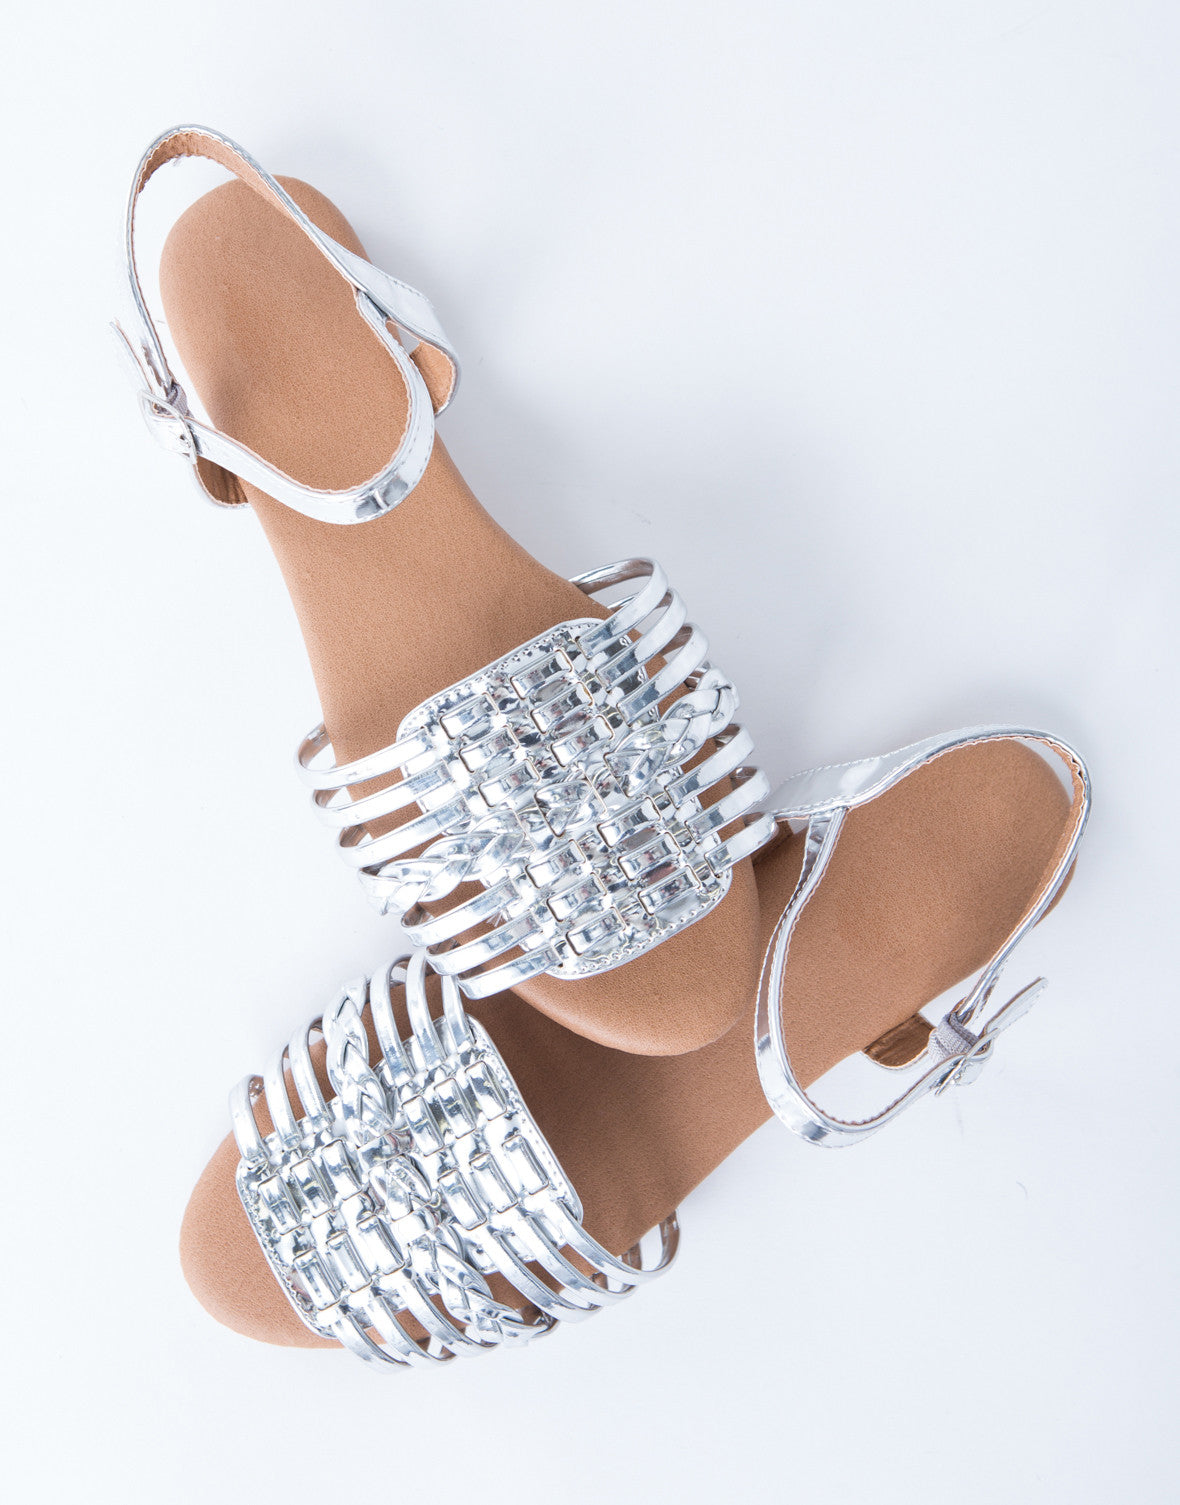 Metallic Ankle Strapped Sandals